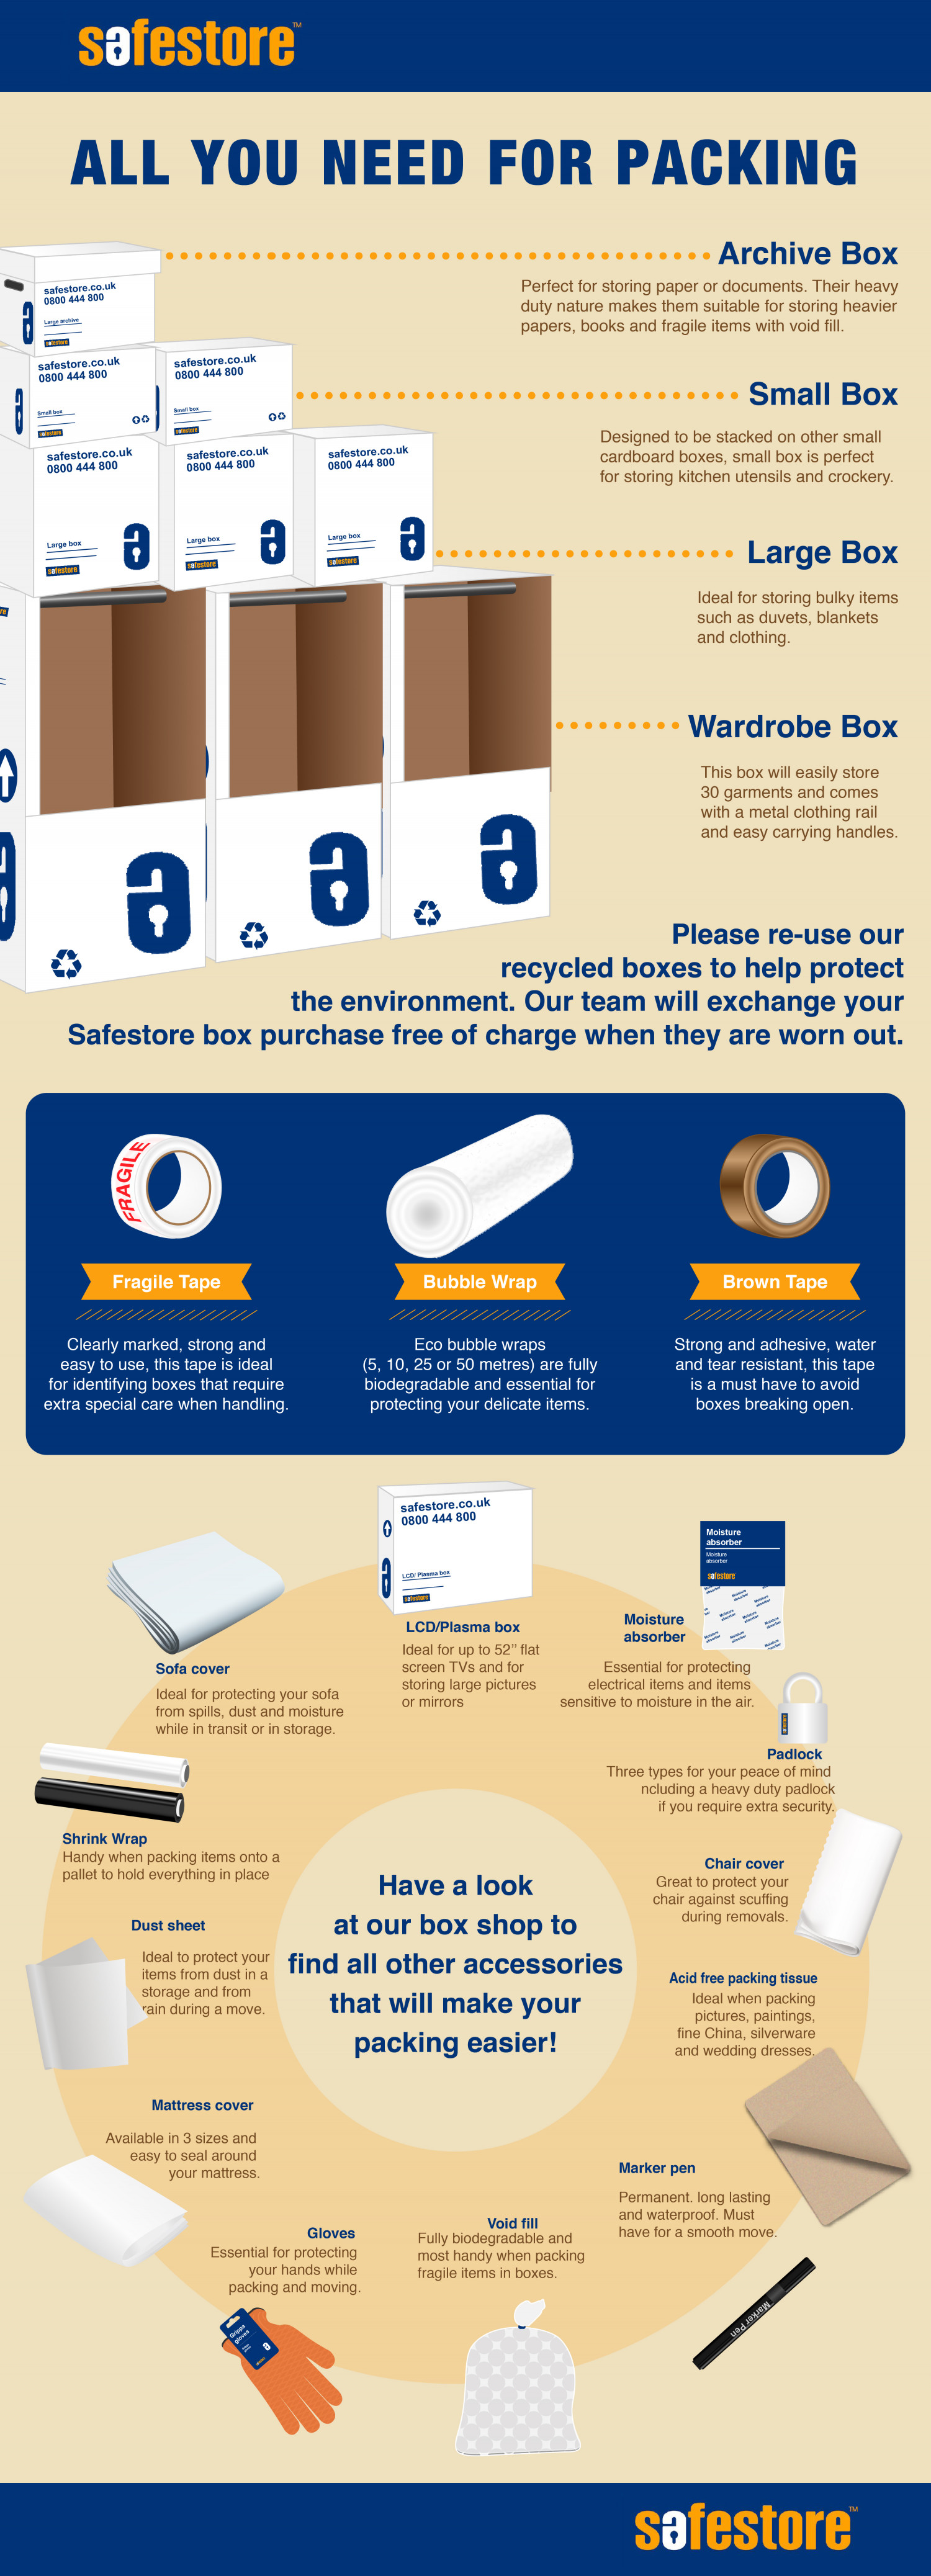 All You Need For Packing Infographic